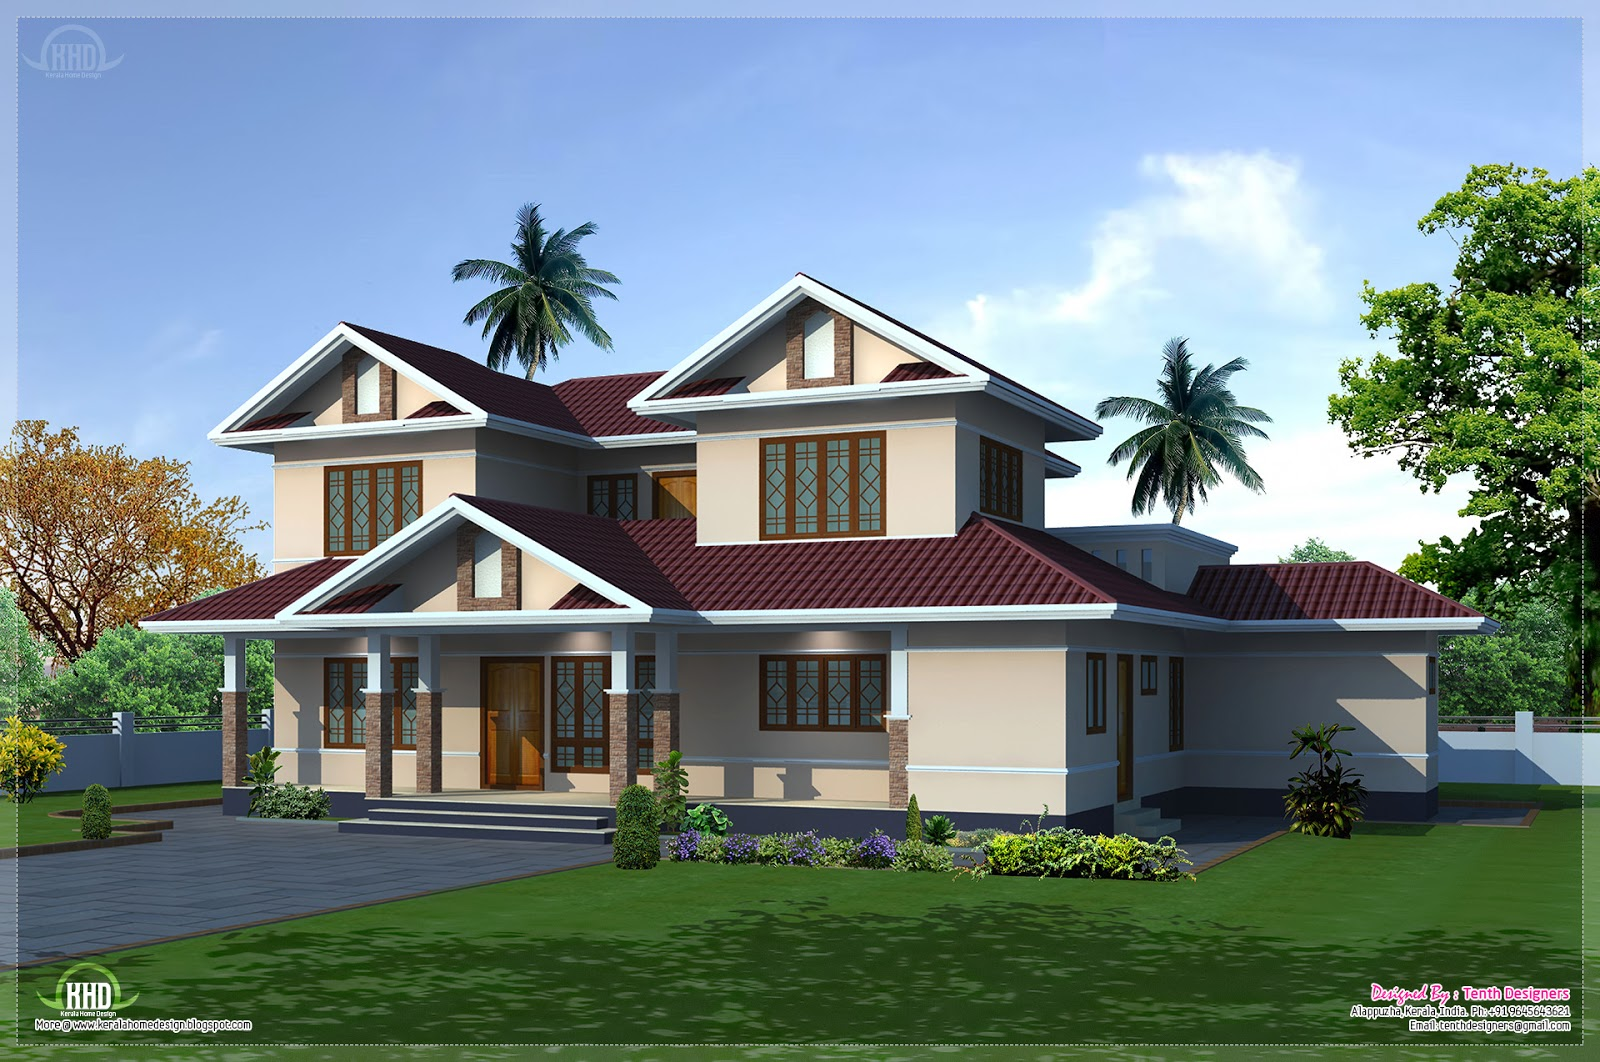 Exterior traditional house plans exterior house designs for Traditional house plans